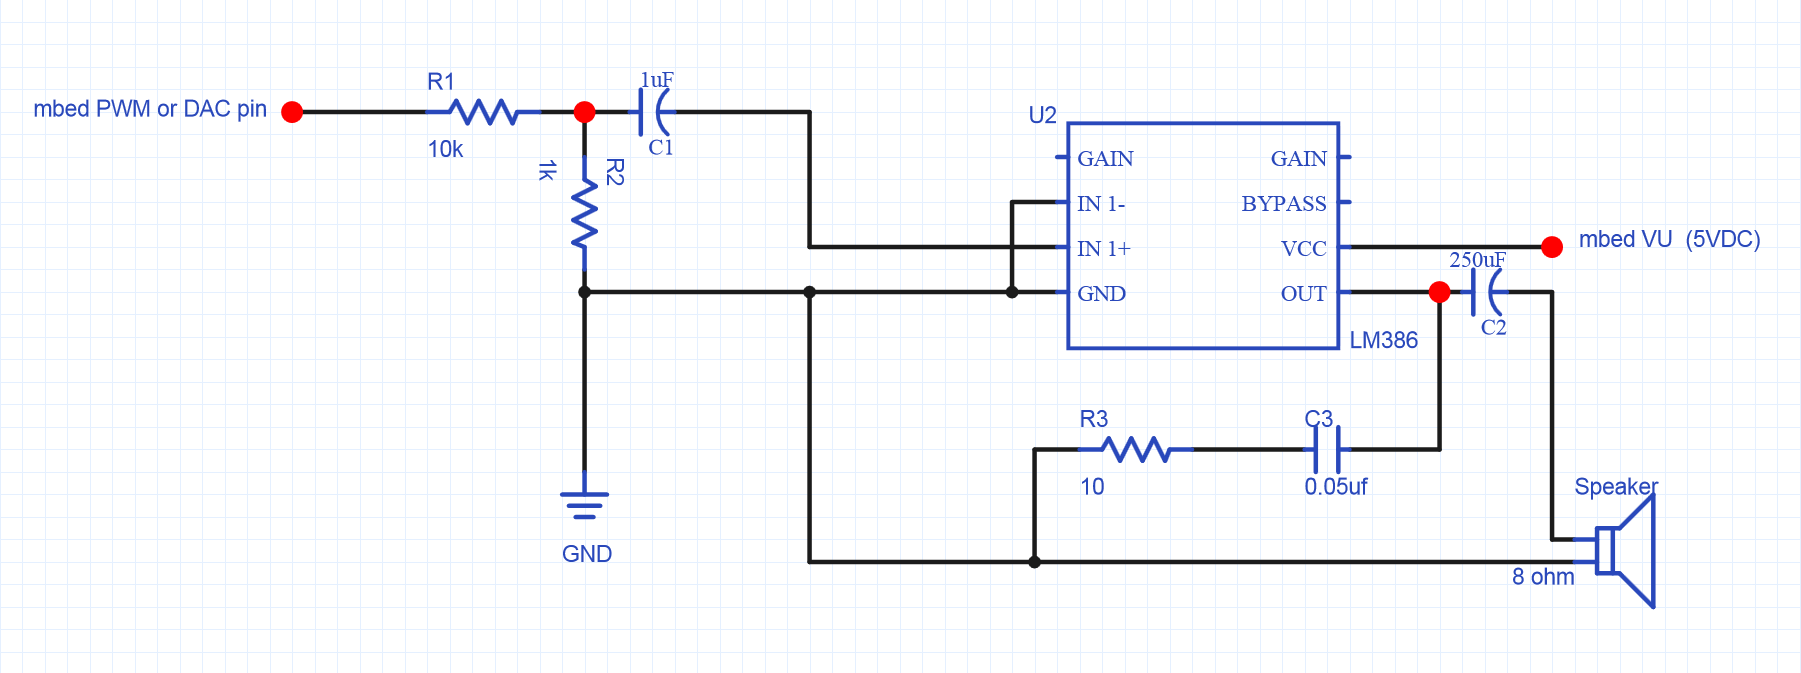 8 ohm speaker wiring diagrams xlr connector diagram using a for audio output mbed lm386 amplifier circuit small 8ohm 5w smaller value r1 can be used to increase the volume